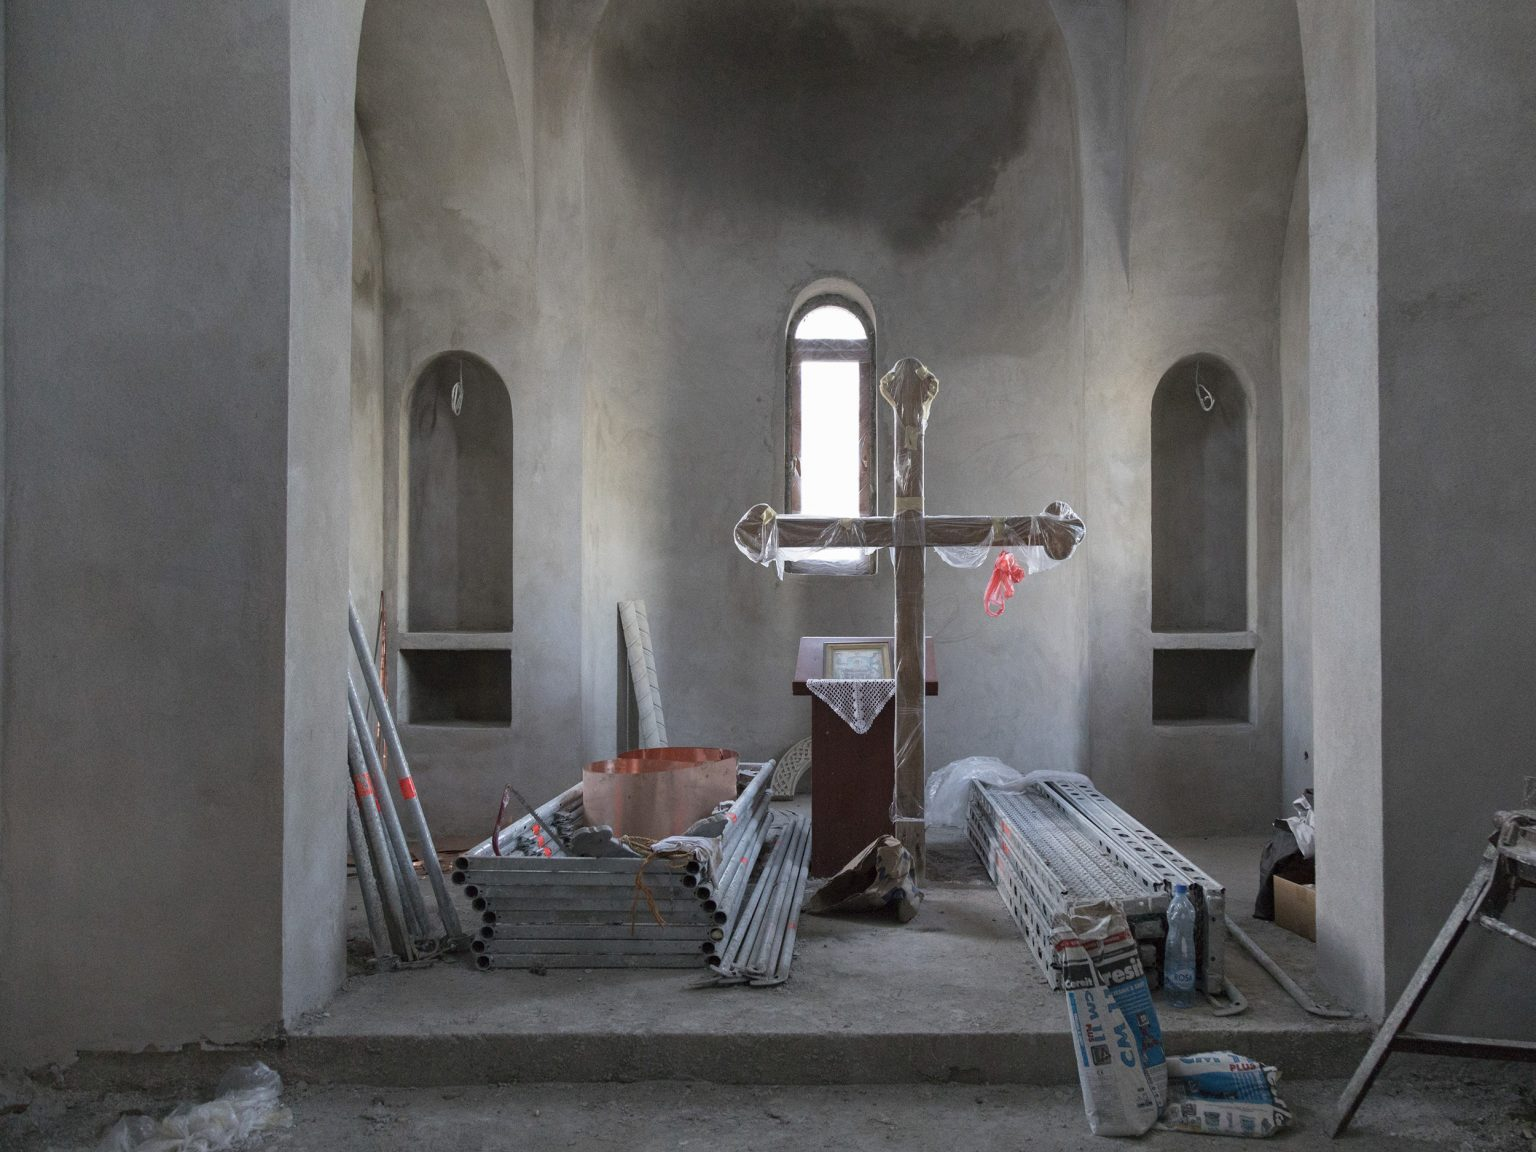 A new Orthodox church is being built on the hill above the city of Leposavić/Leposaviq in North Kosovo. Leposavić/Leposaviq has the highest density of Serbs in Kosovo.